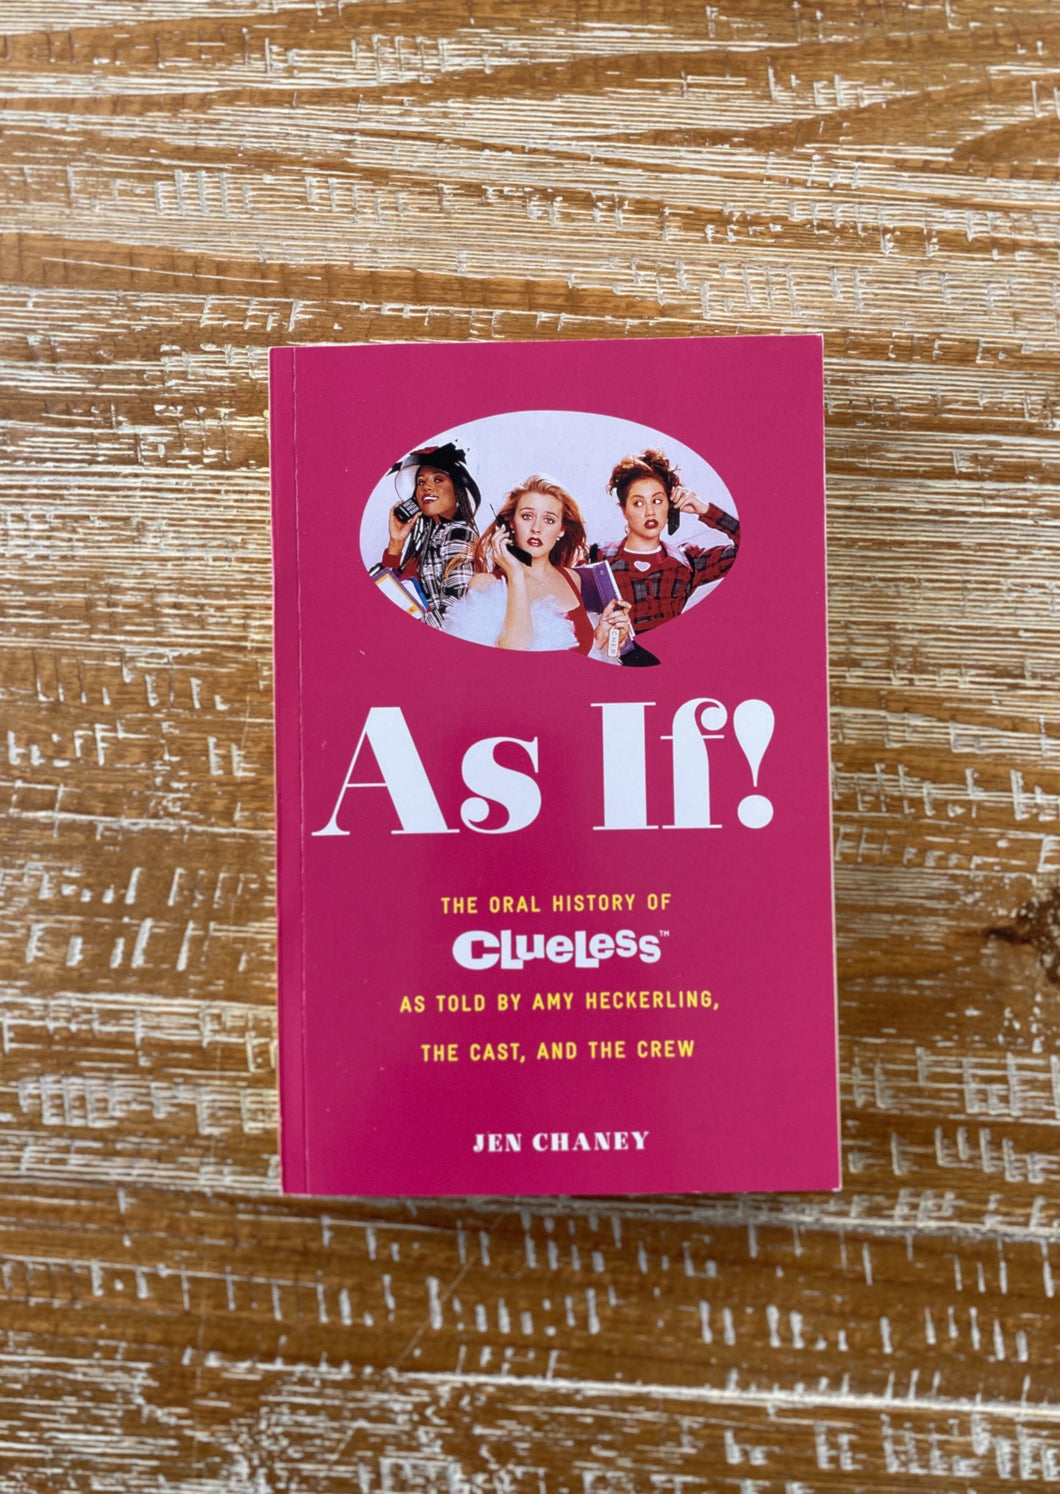 As If! (The Oral History of Clueless as told by Amy Heckerling and the Cast and Crew) by Jen Chaney